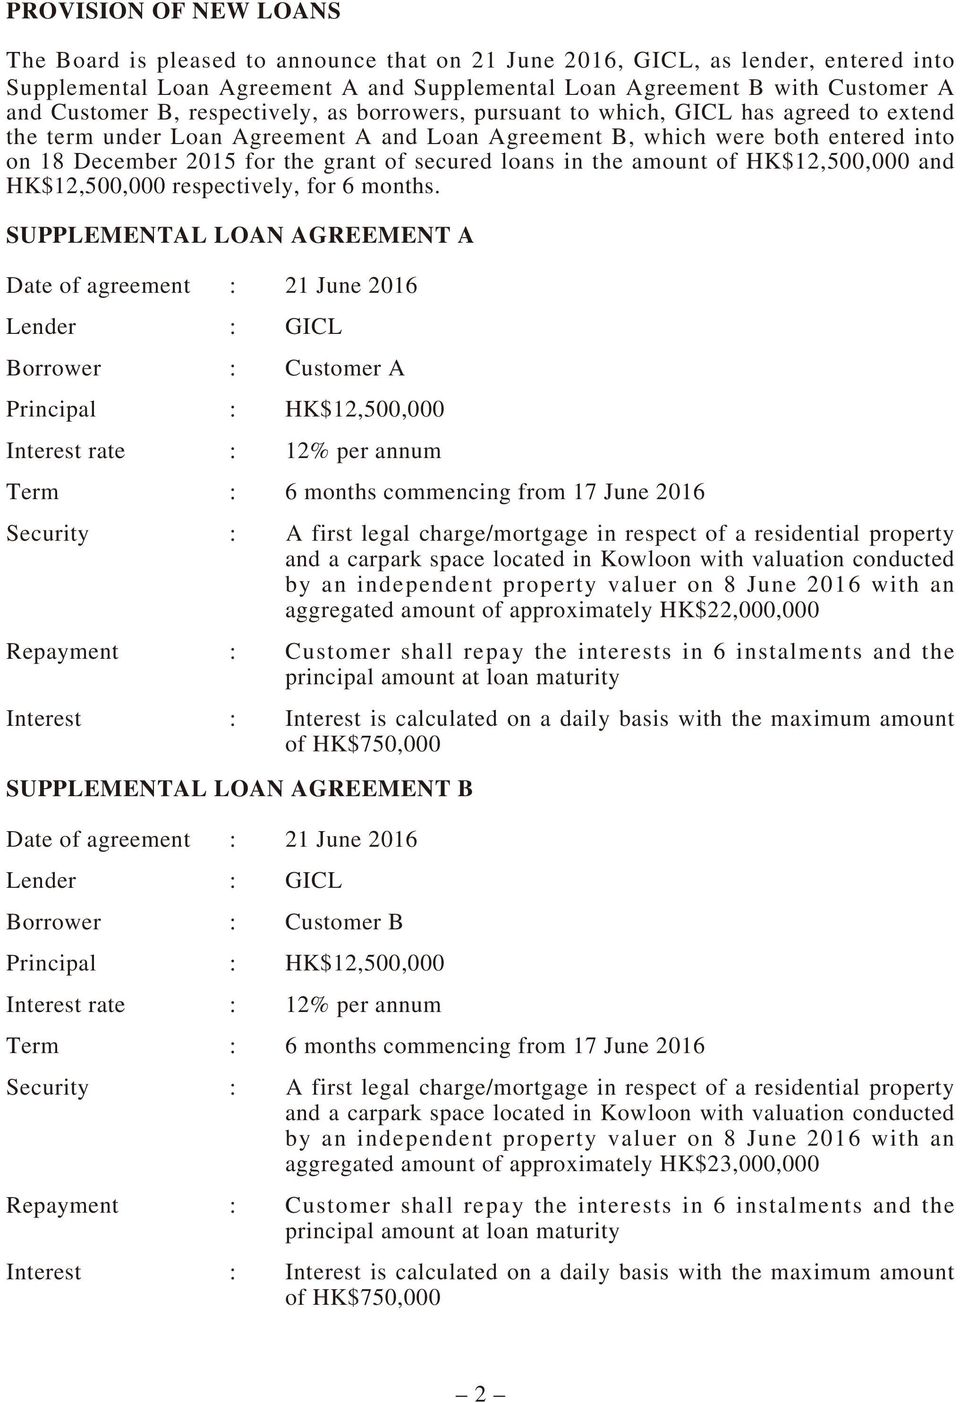 grant of secured loans in the amount of HK$12,500,000 and HK$12,500,000 respectively, for 6 months.